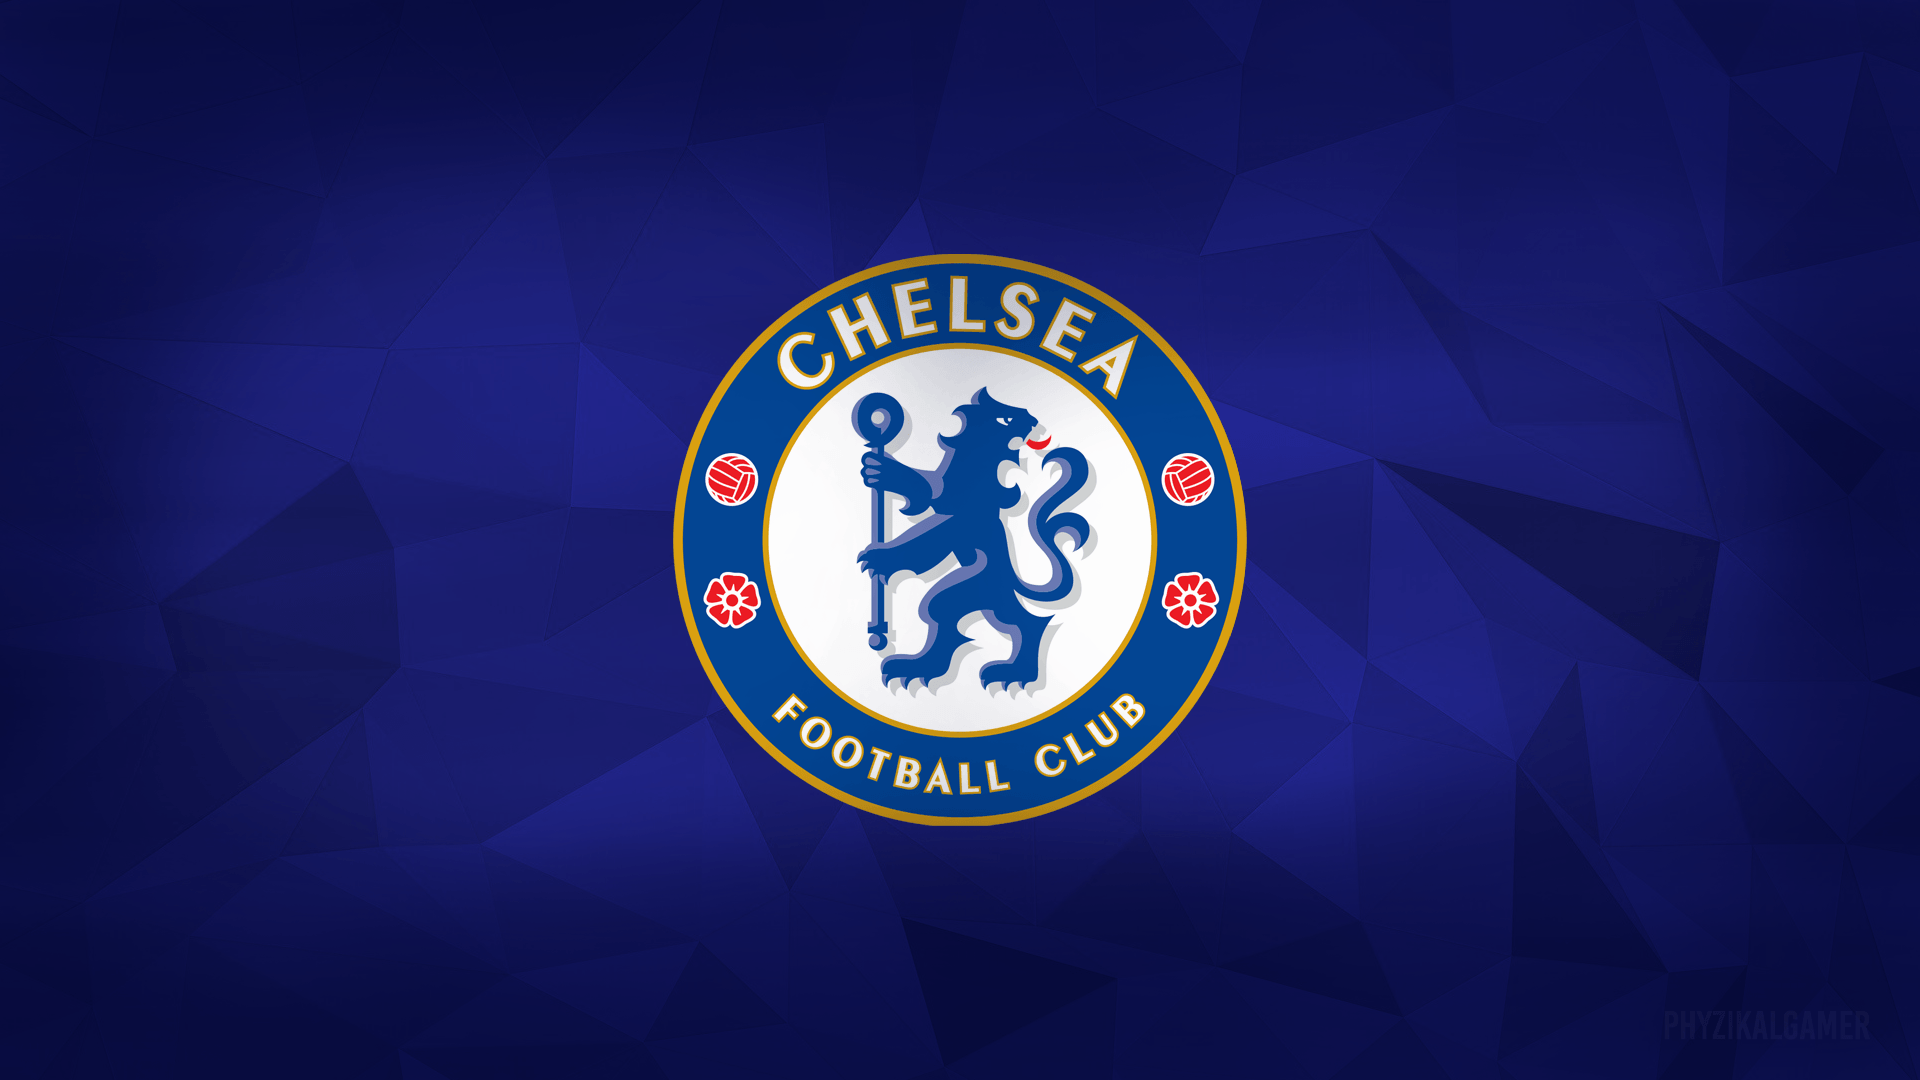 Chelsea Desktop Wallpapers Top Free Chelsea Desktop